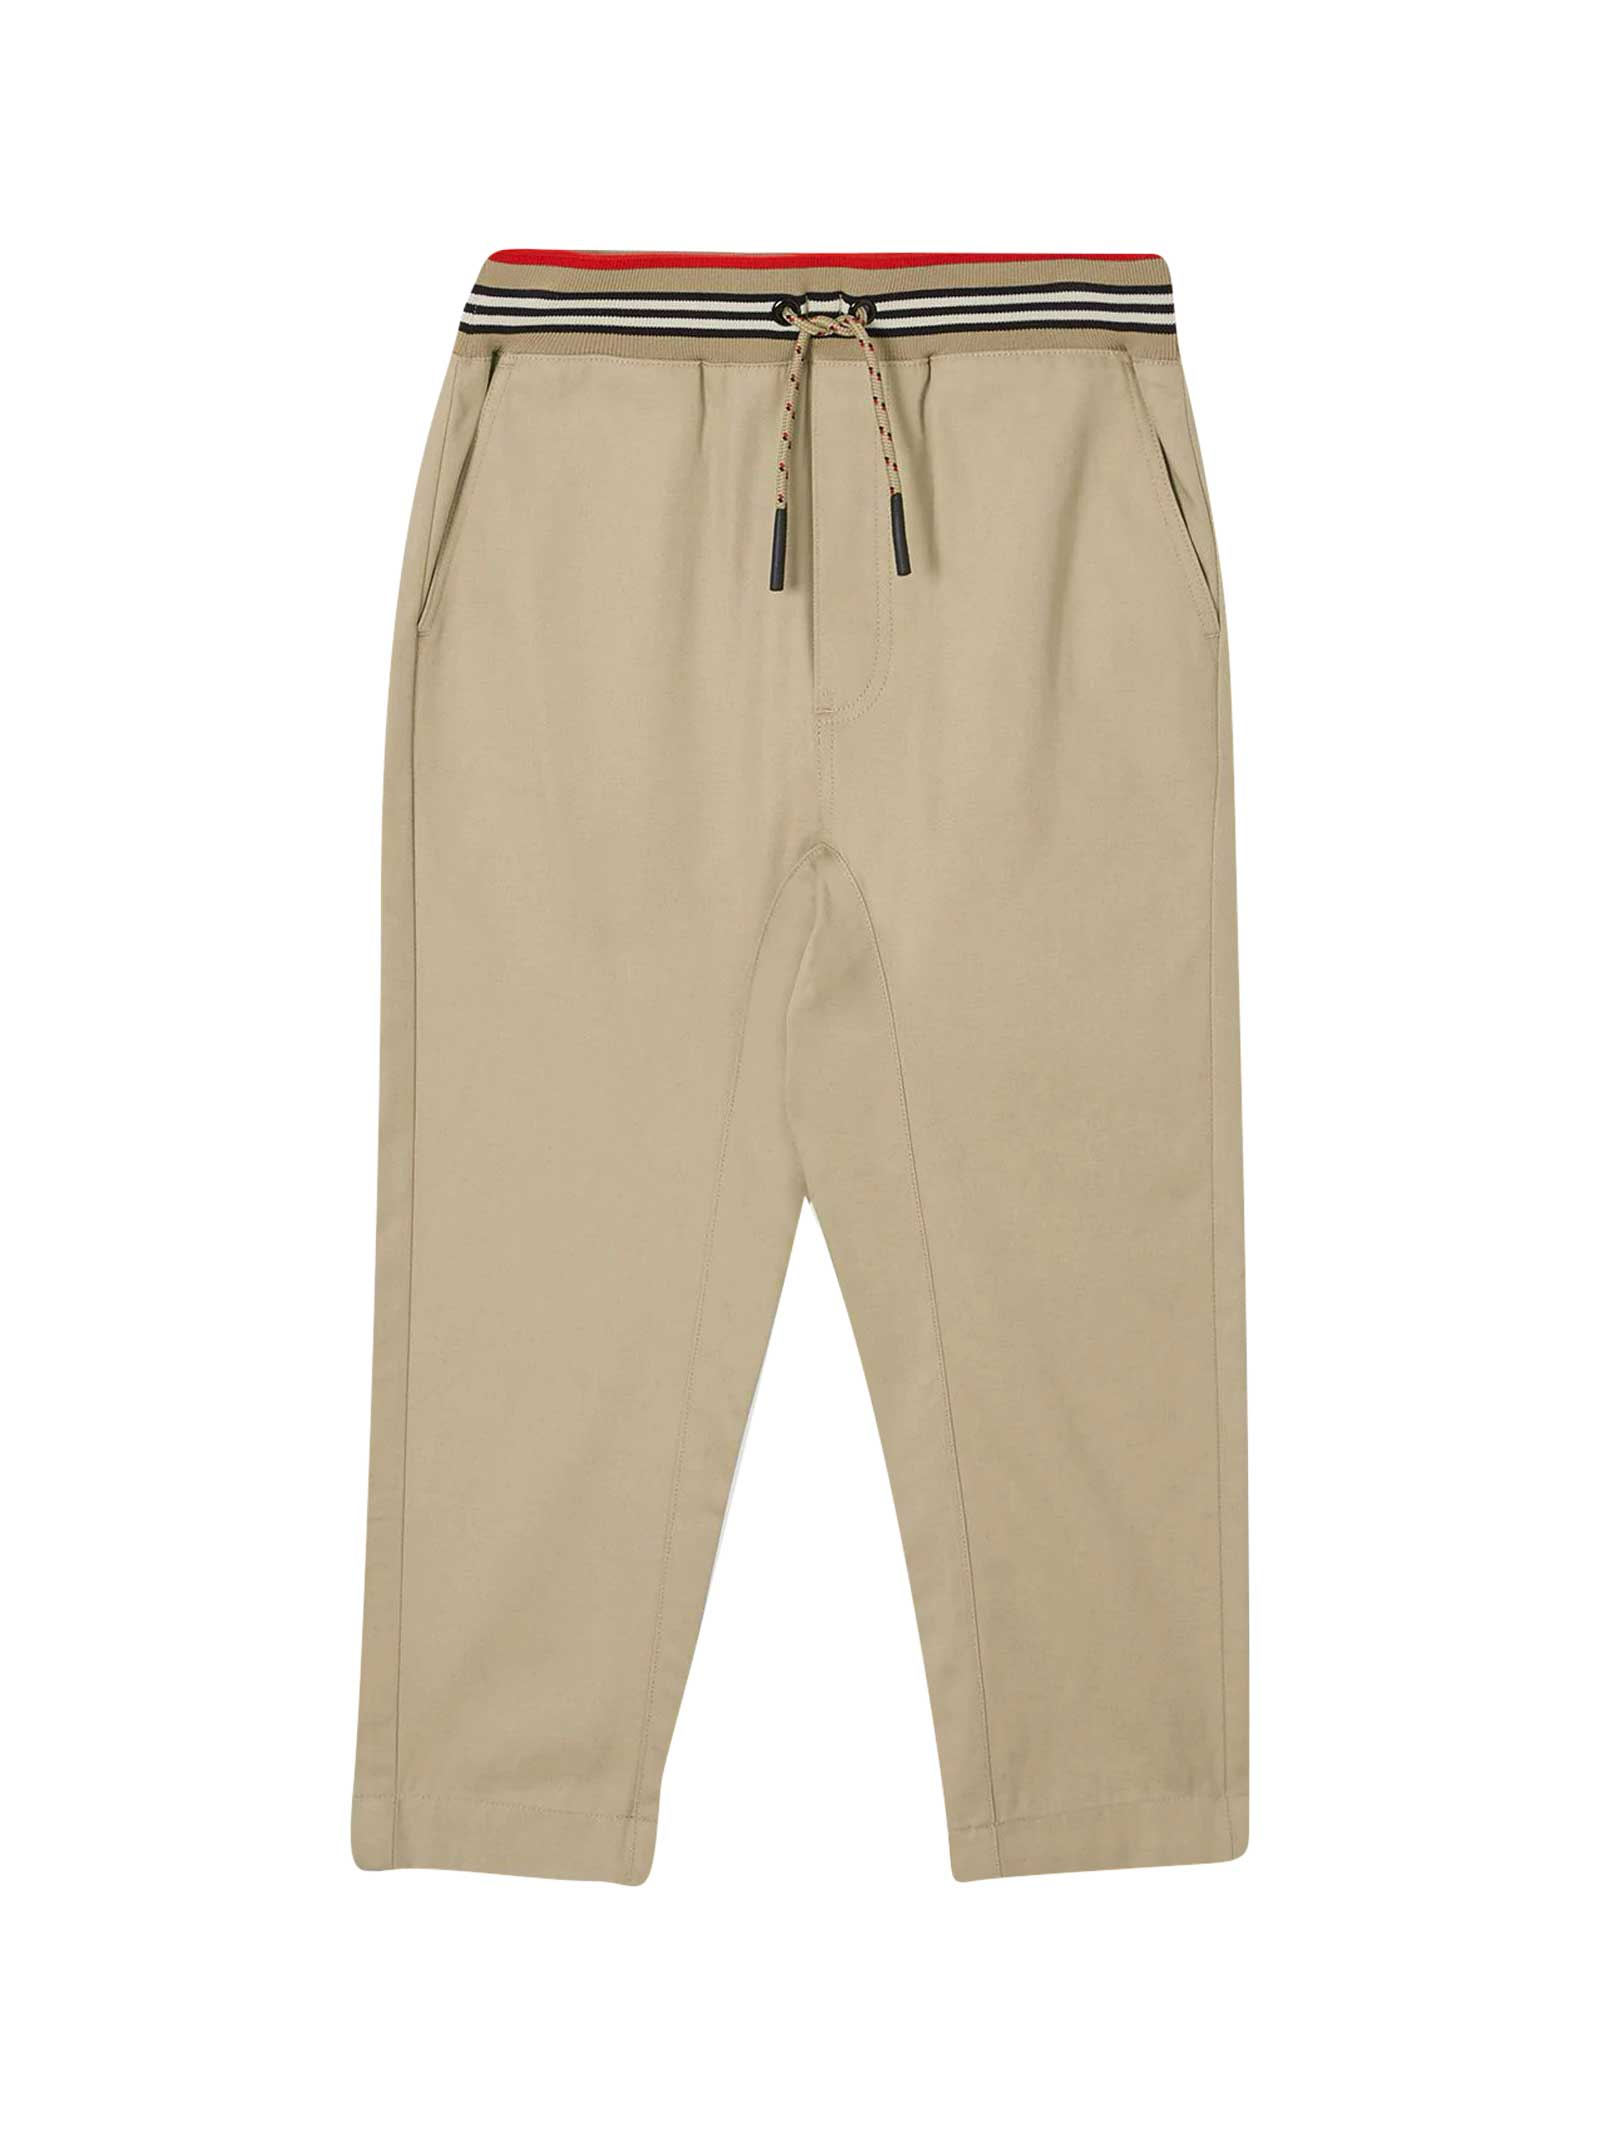 Burberry Kids' Beige Trousers In Sabbia